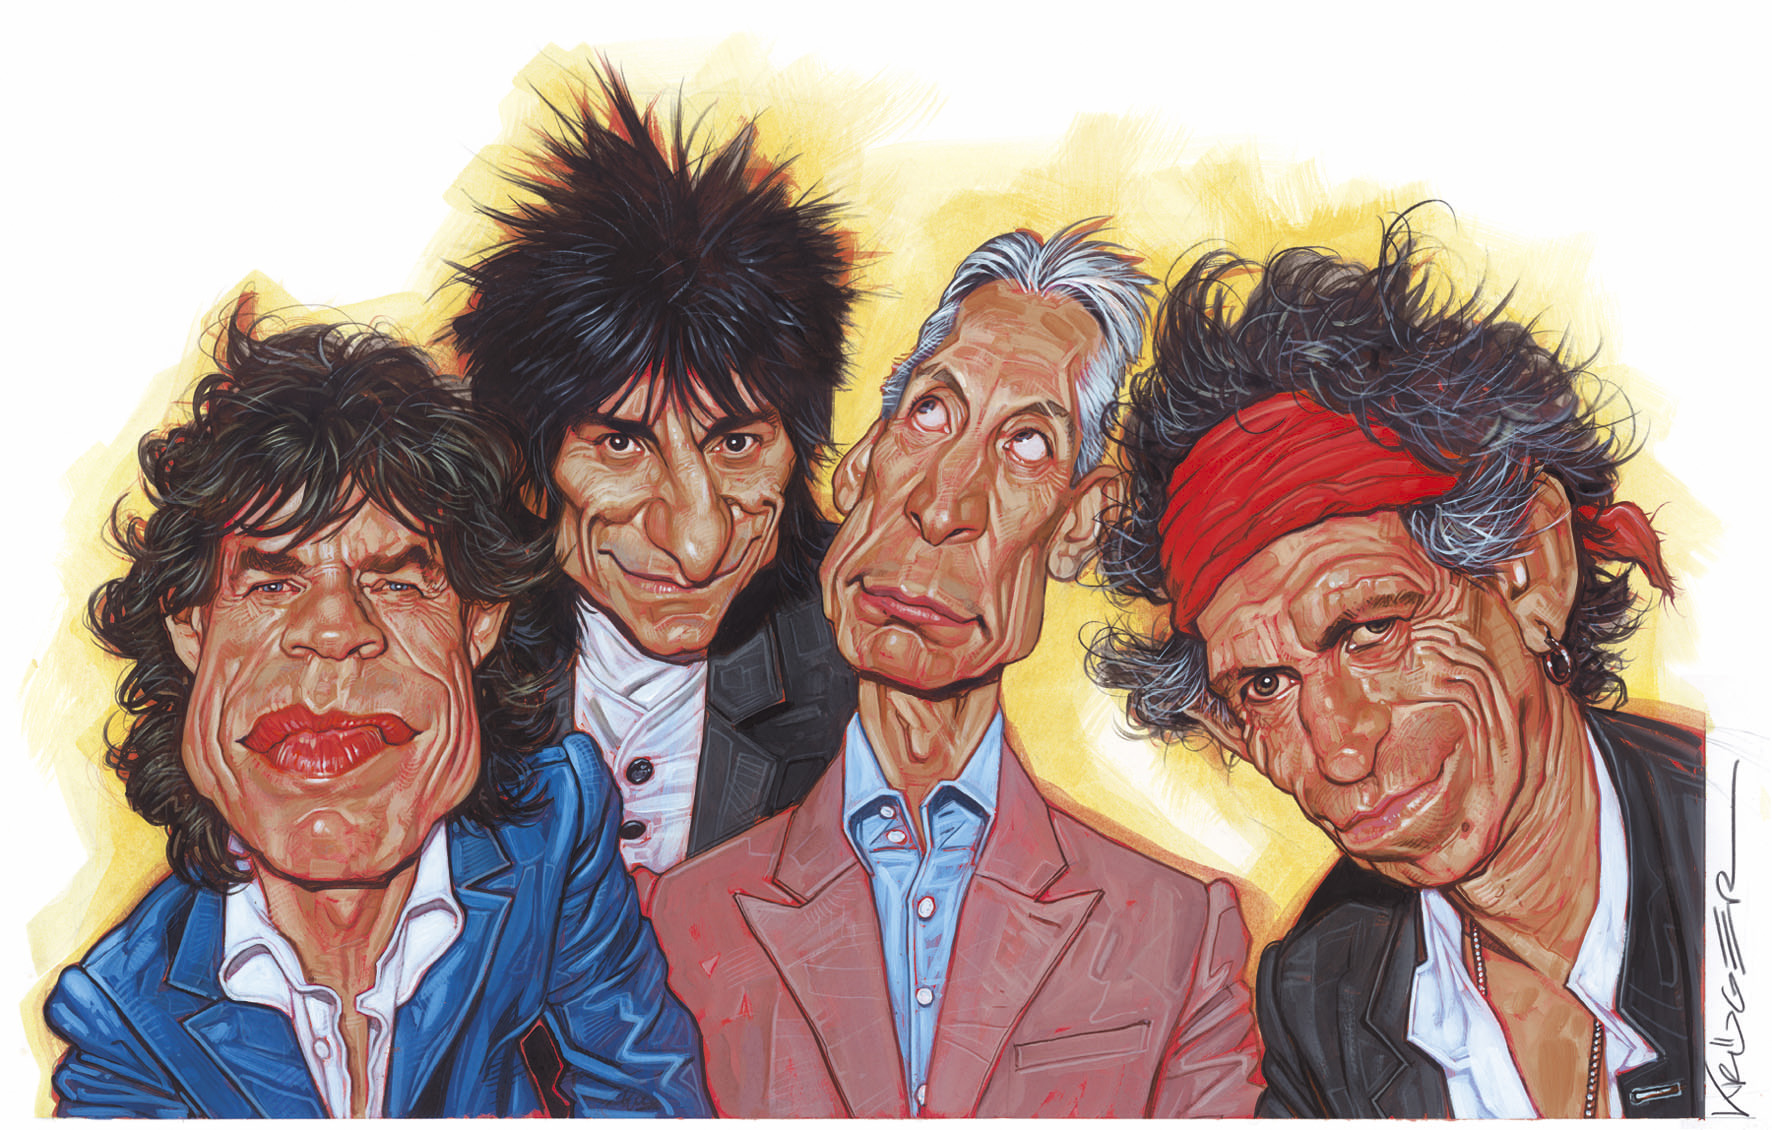 left to right: Mick Jagger, Ron Wood, Charlie Watts, Keith Richards